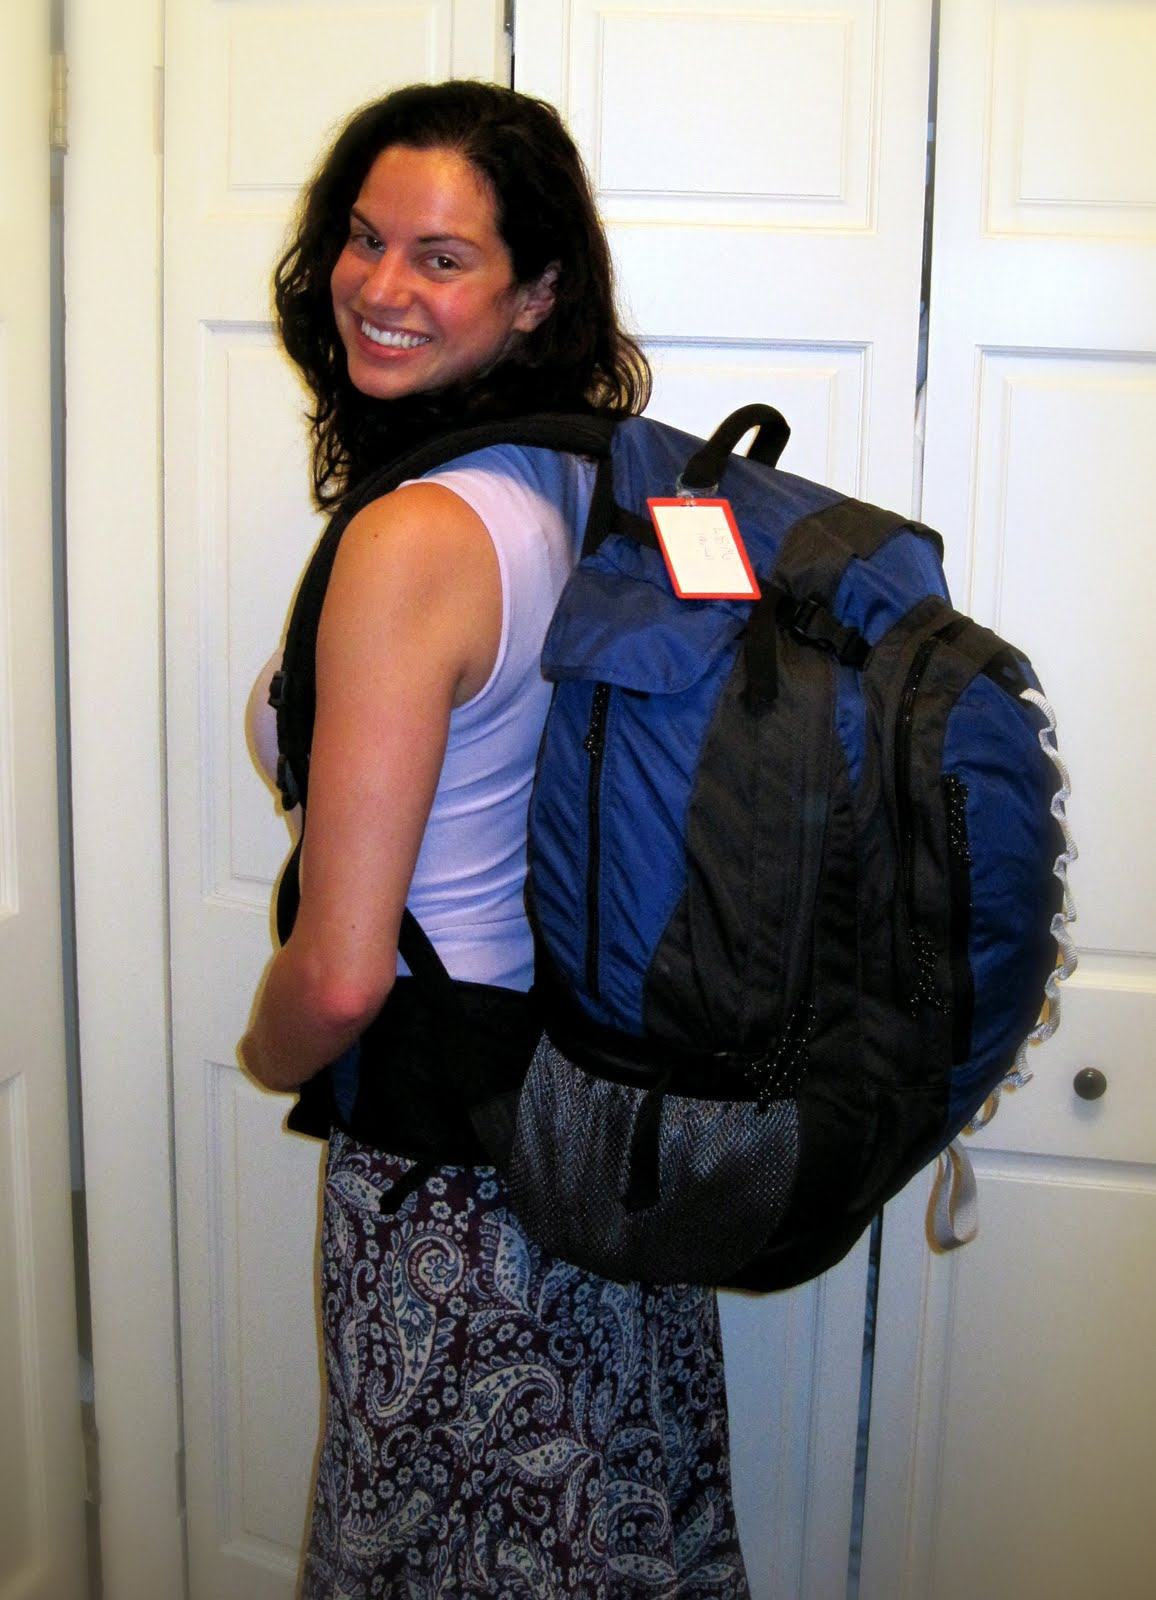 With the backpack that will take me around the world!